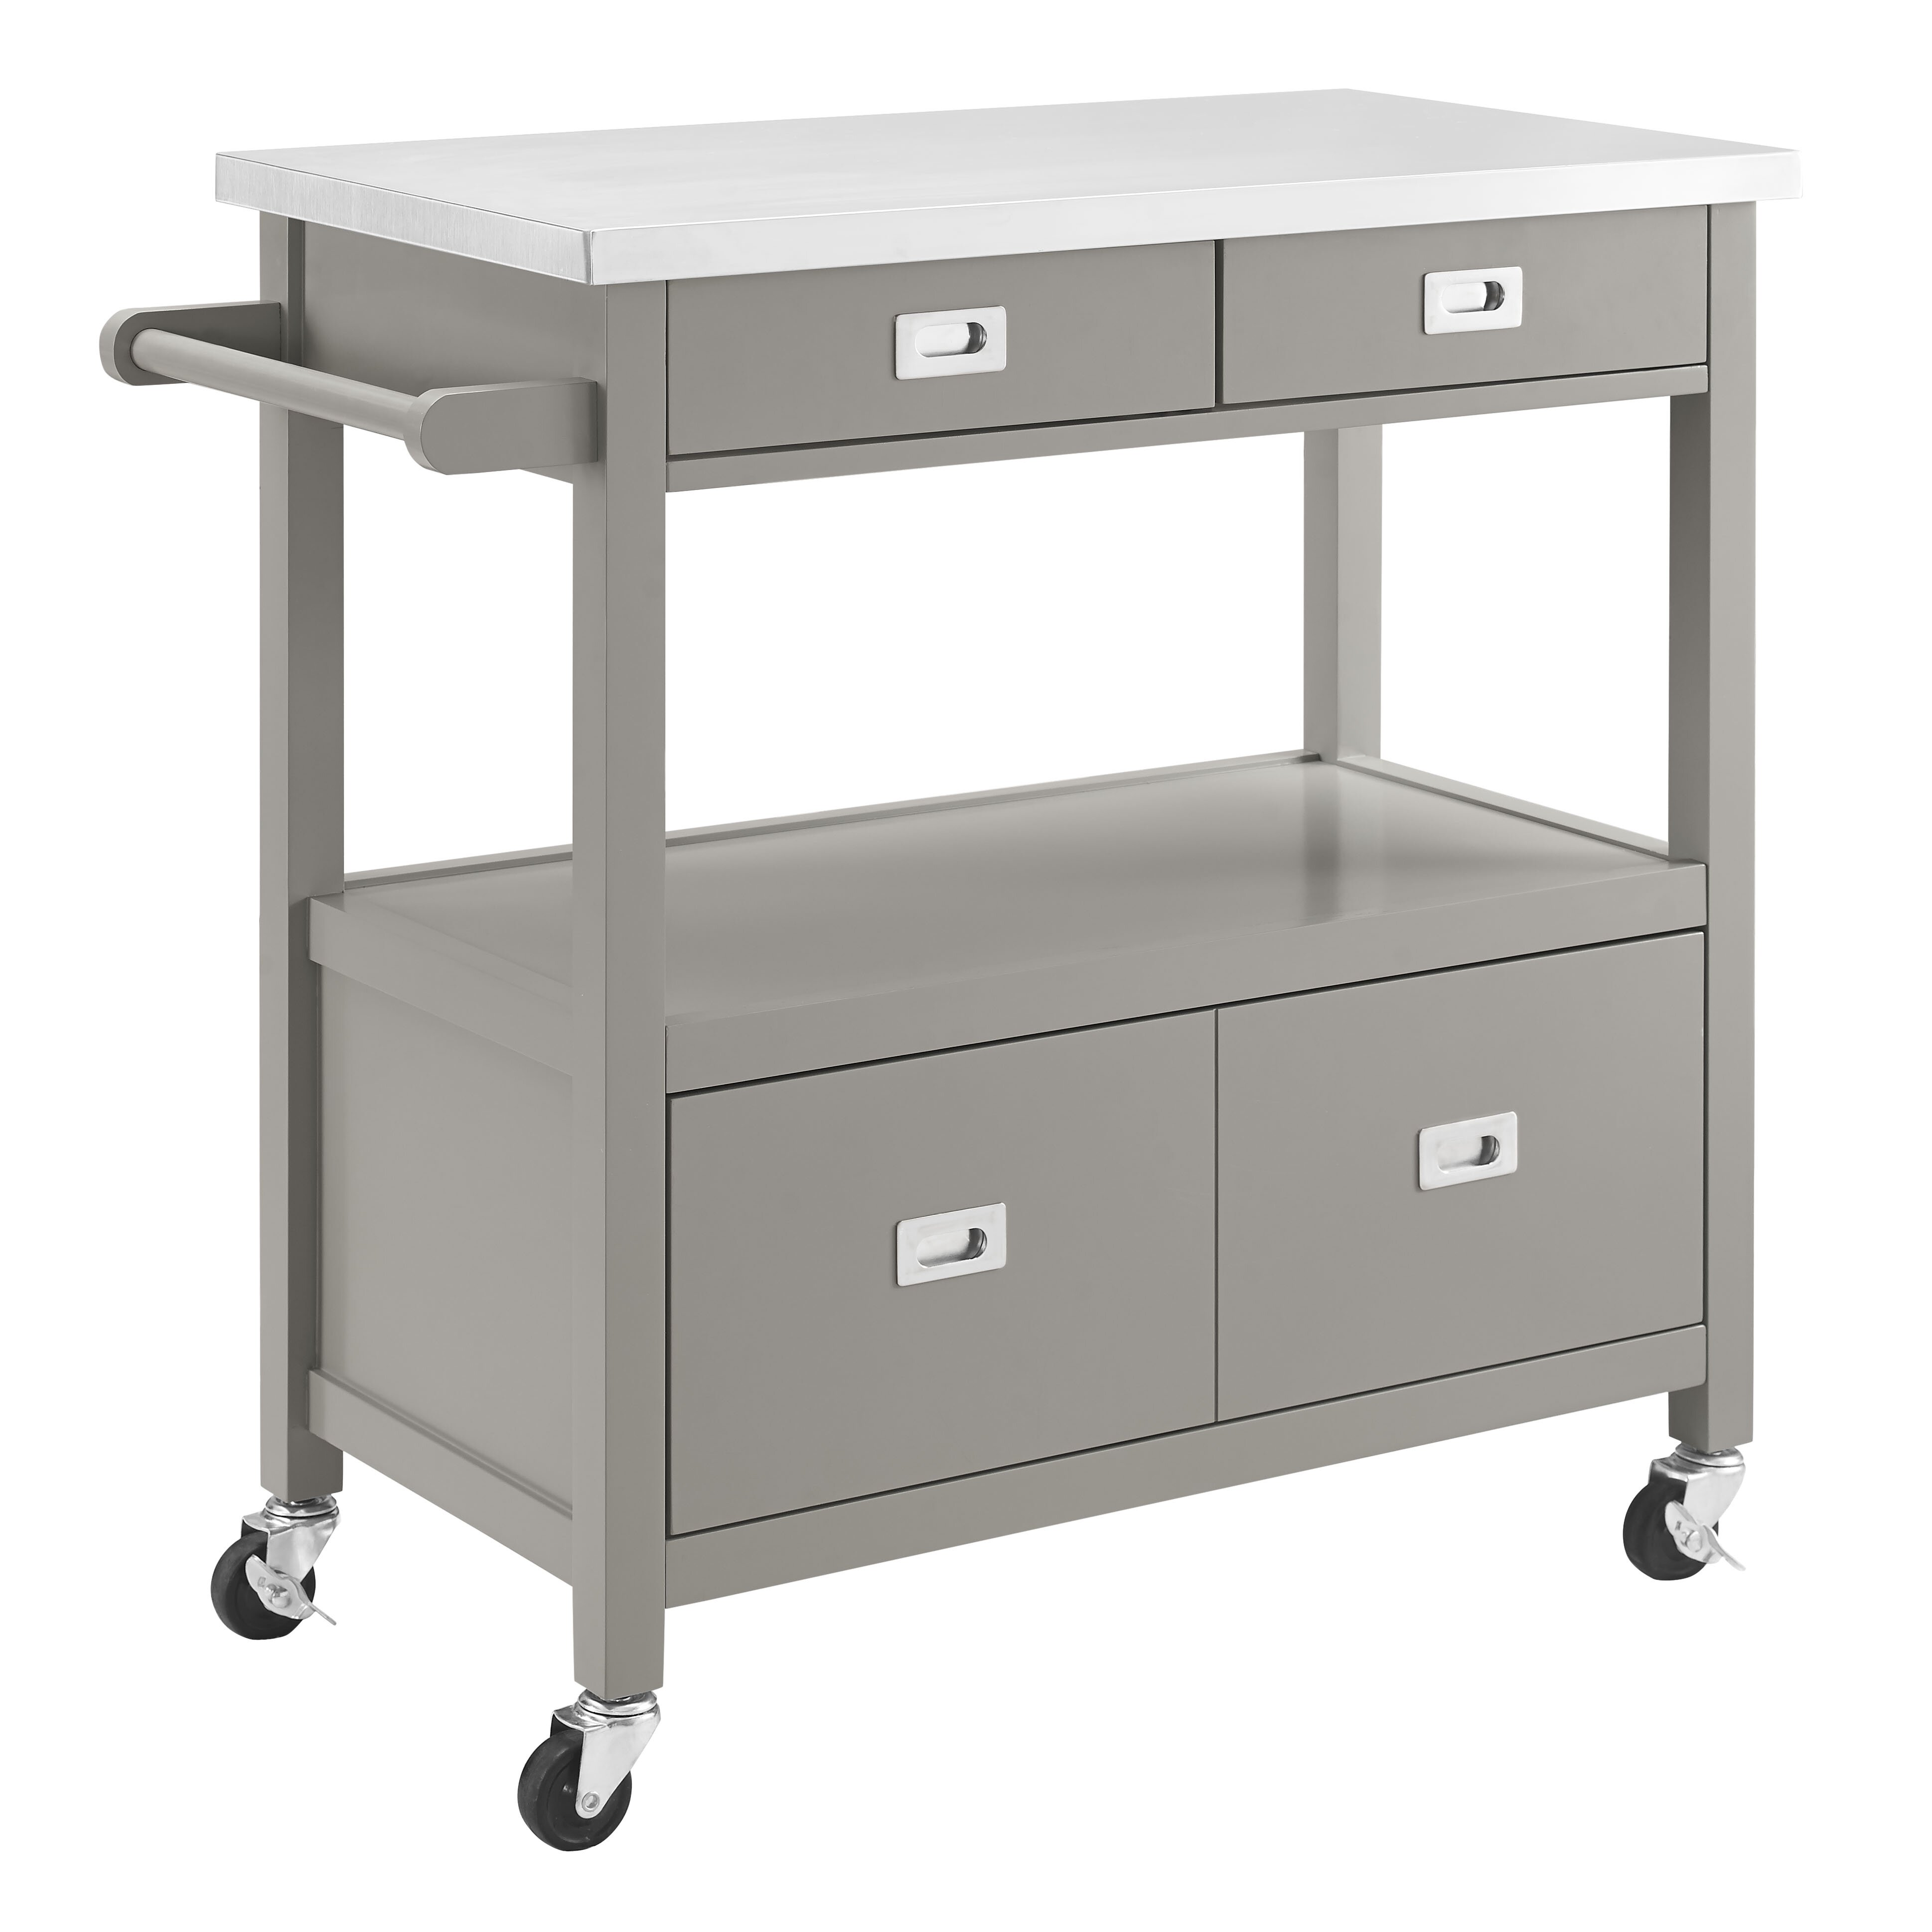 Kitchen Island With Stainless Steel Top: Mercury Row Aubuchon Kitchen Island With Stainless Steel